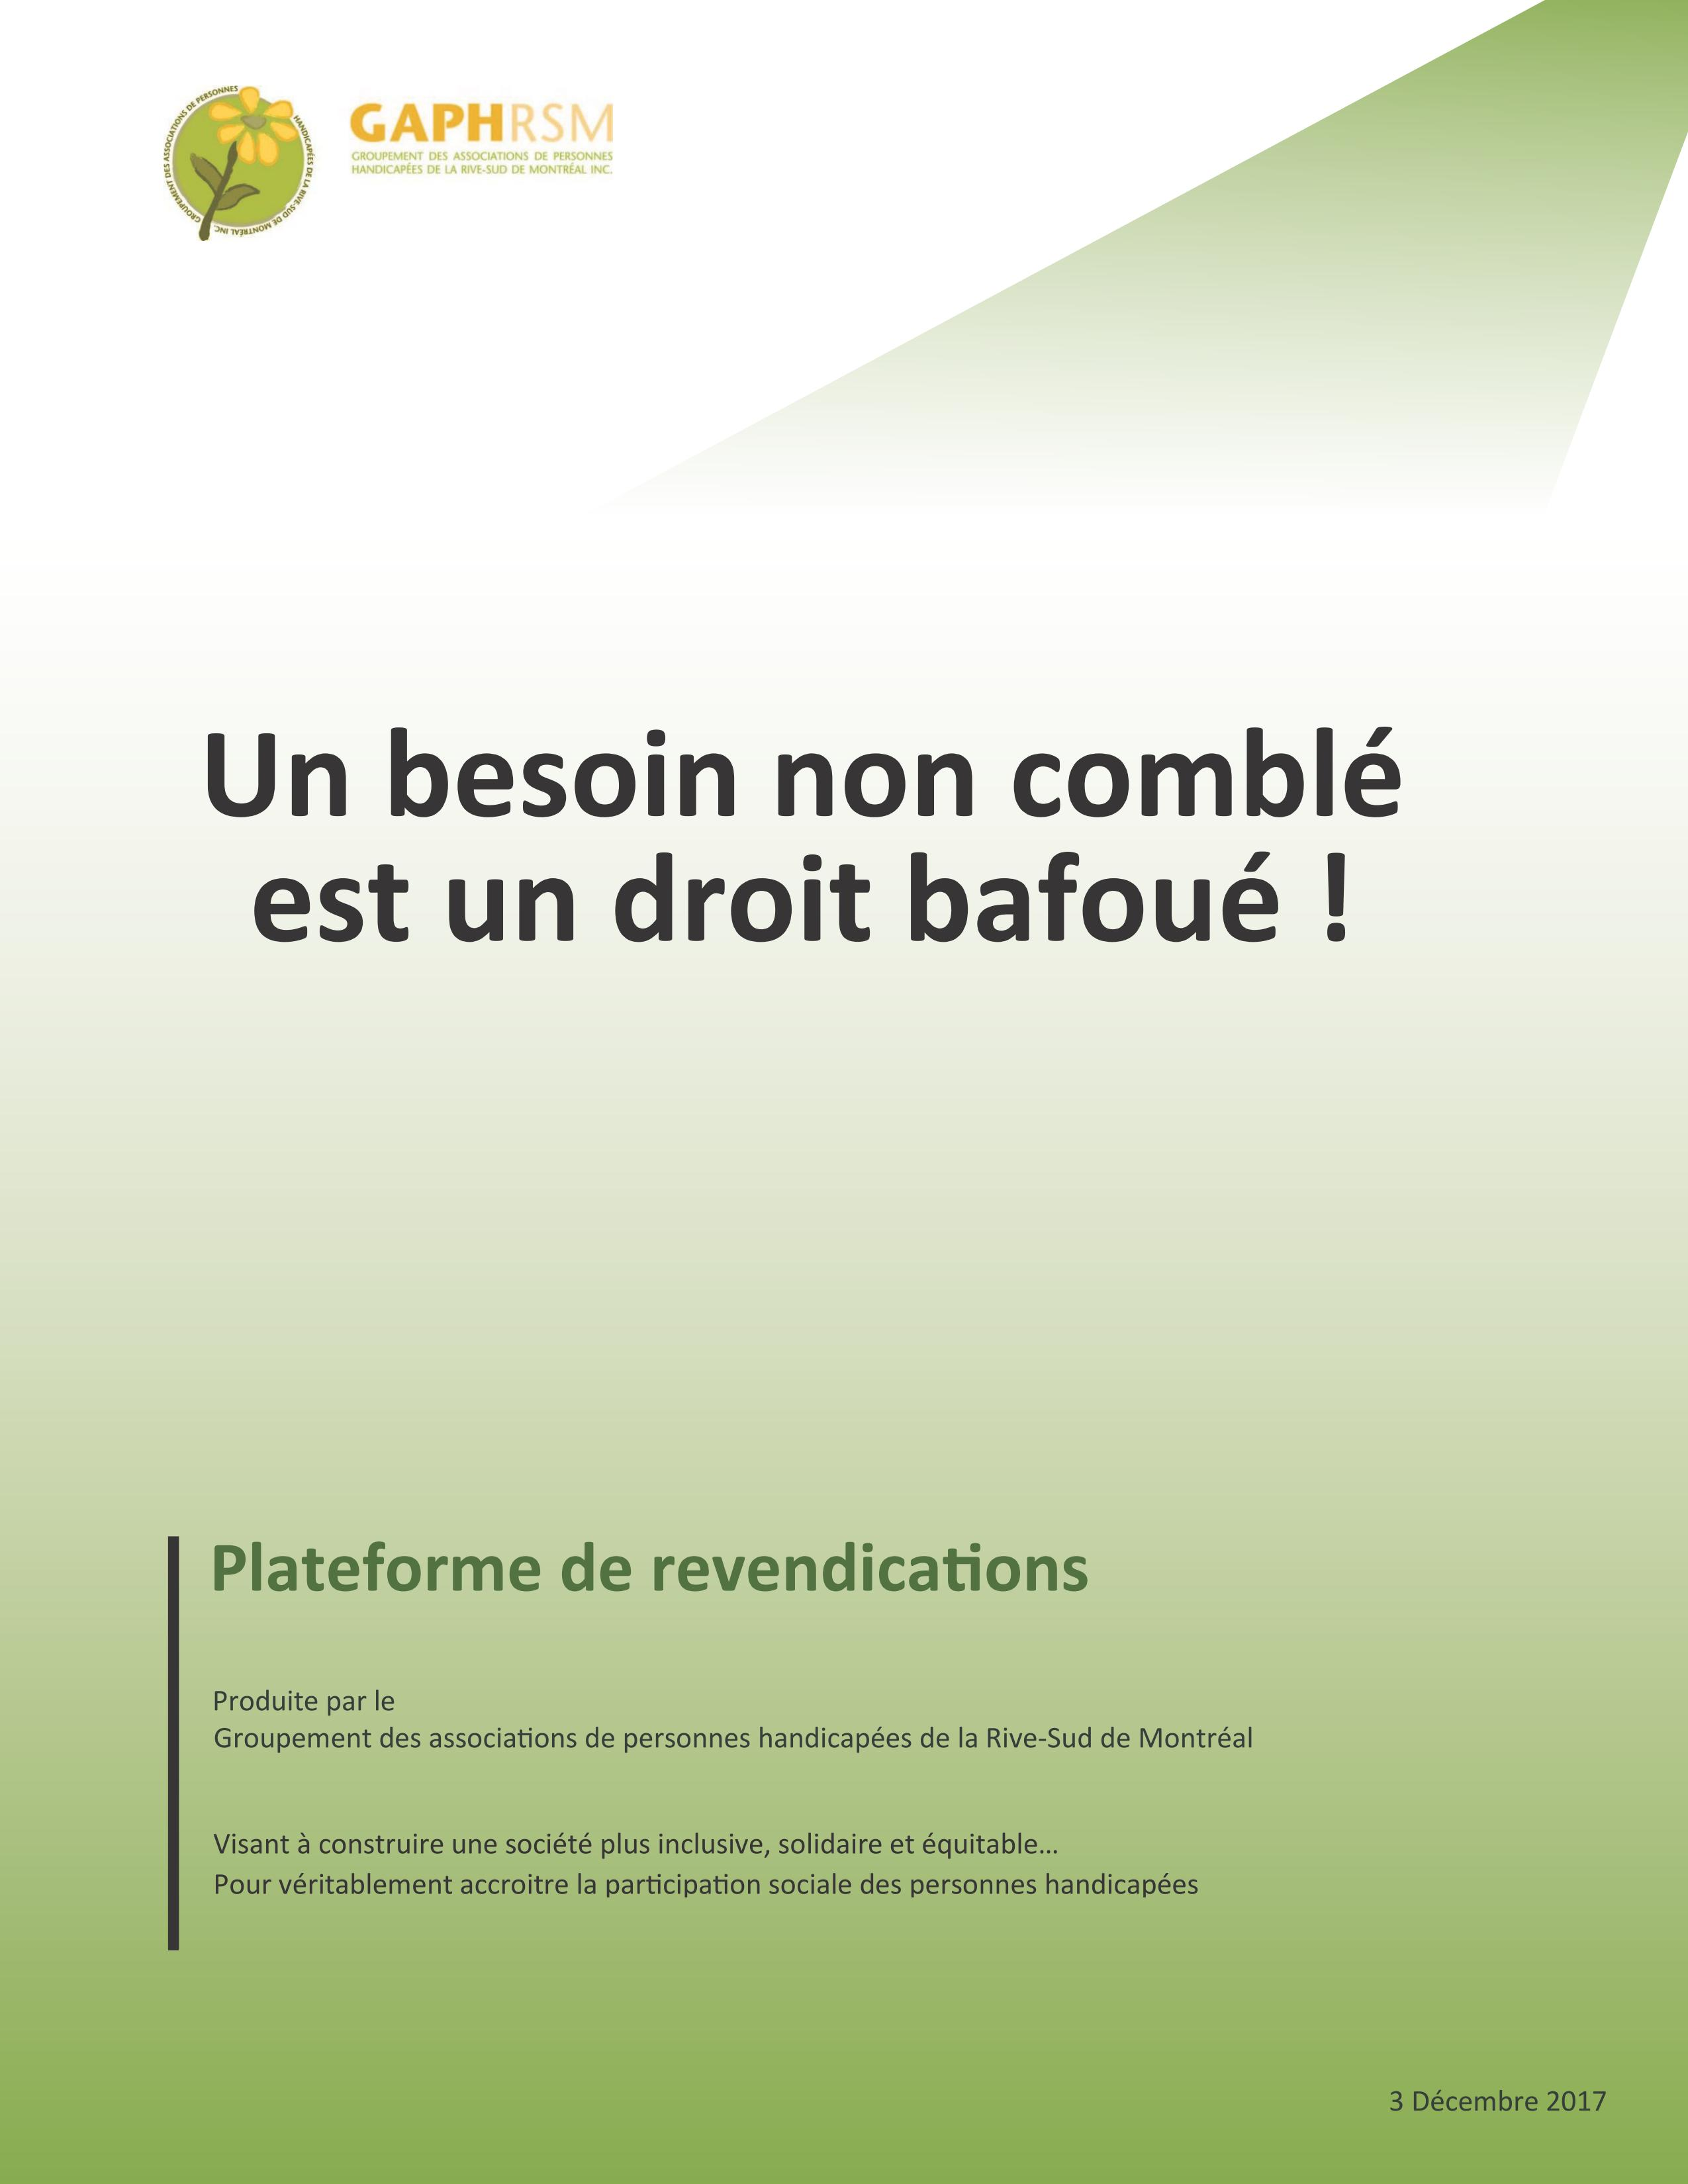 UN BESOIN NON COMBLÉ EST UN DROIT BAFOUÉ ! PLATEFORME DE REVENDICATIONS (VERSION ACCESSIBLE)